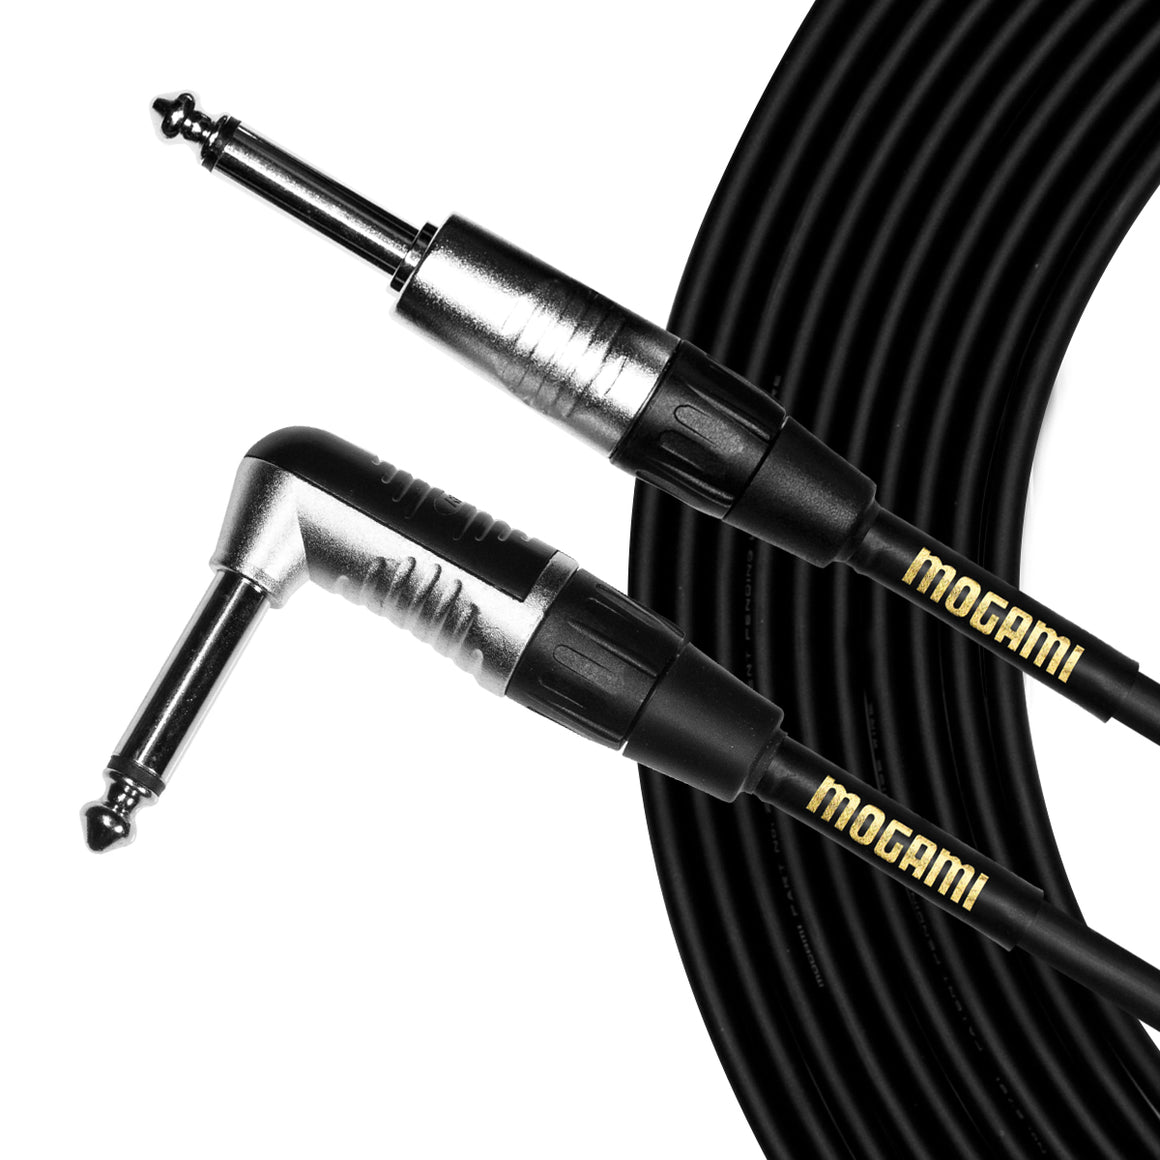 "Mogami CorePlus 1/4"" TS, 10' Instrument Cable - Right-angle to Straight"